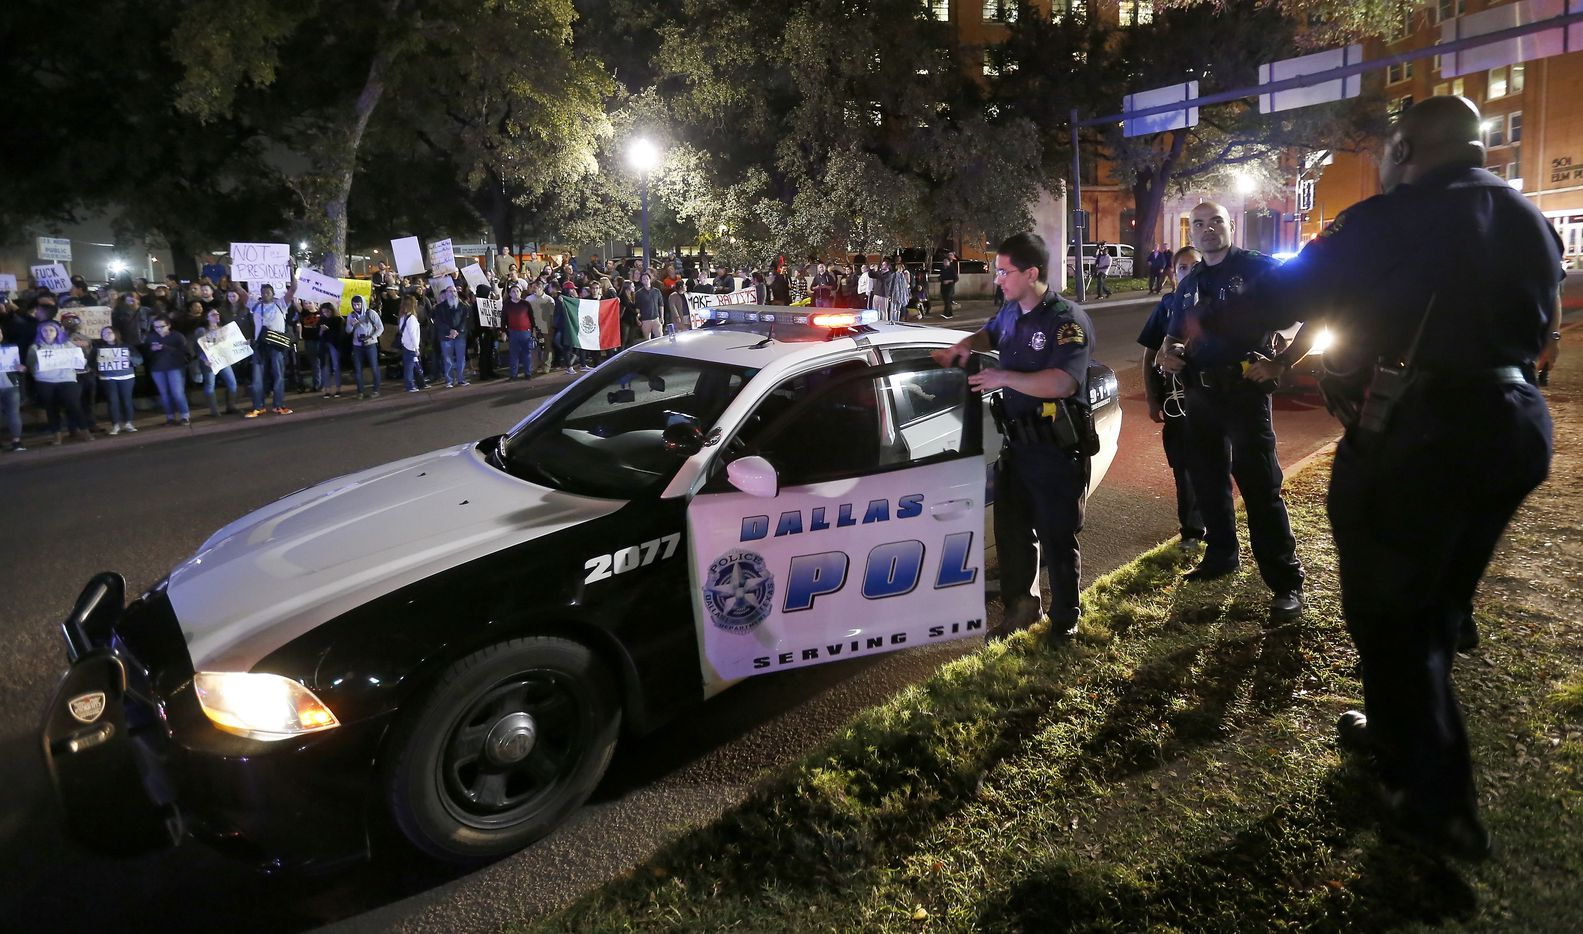 Dallas Police officers gather near protesters against President-elect Donald Trump on Elm Street in downtown Dallas, Thursday, Nov. 10, 2016.